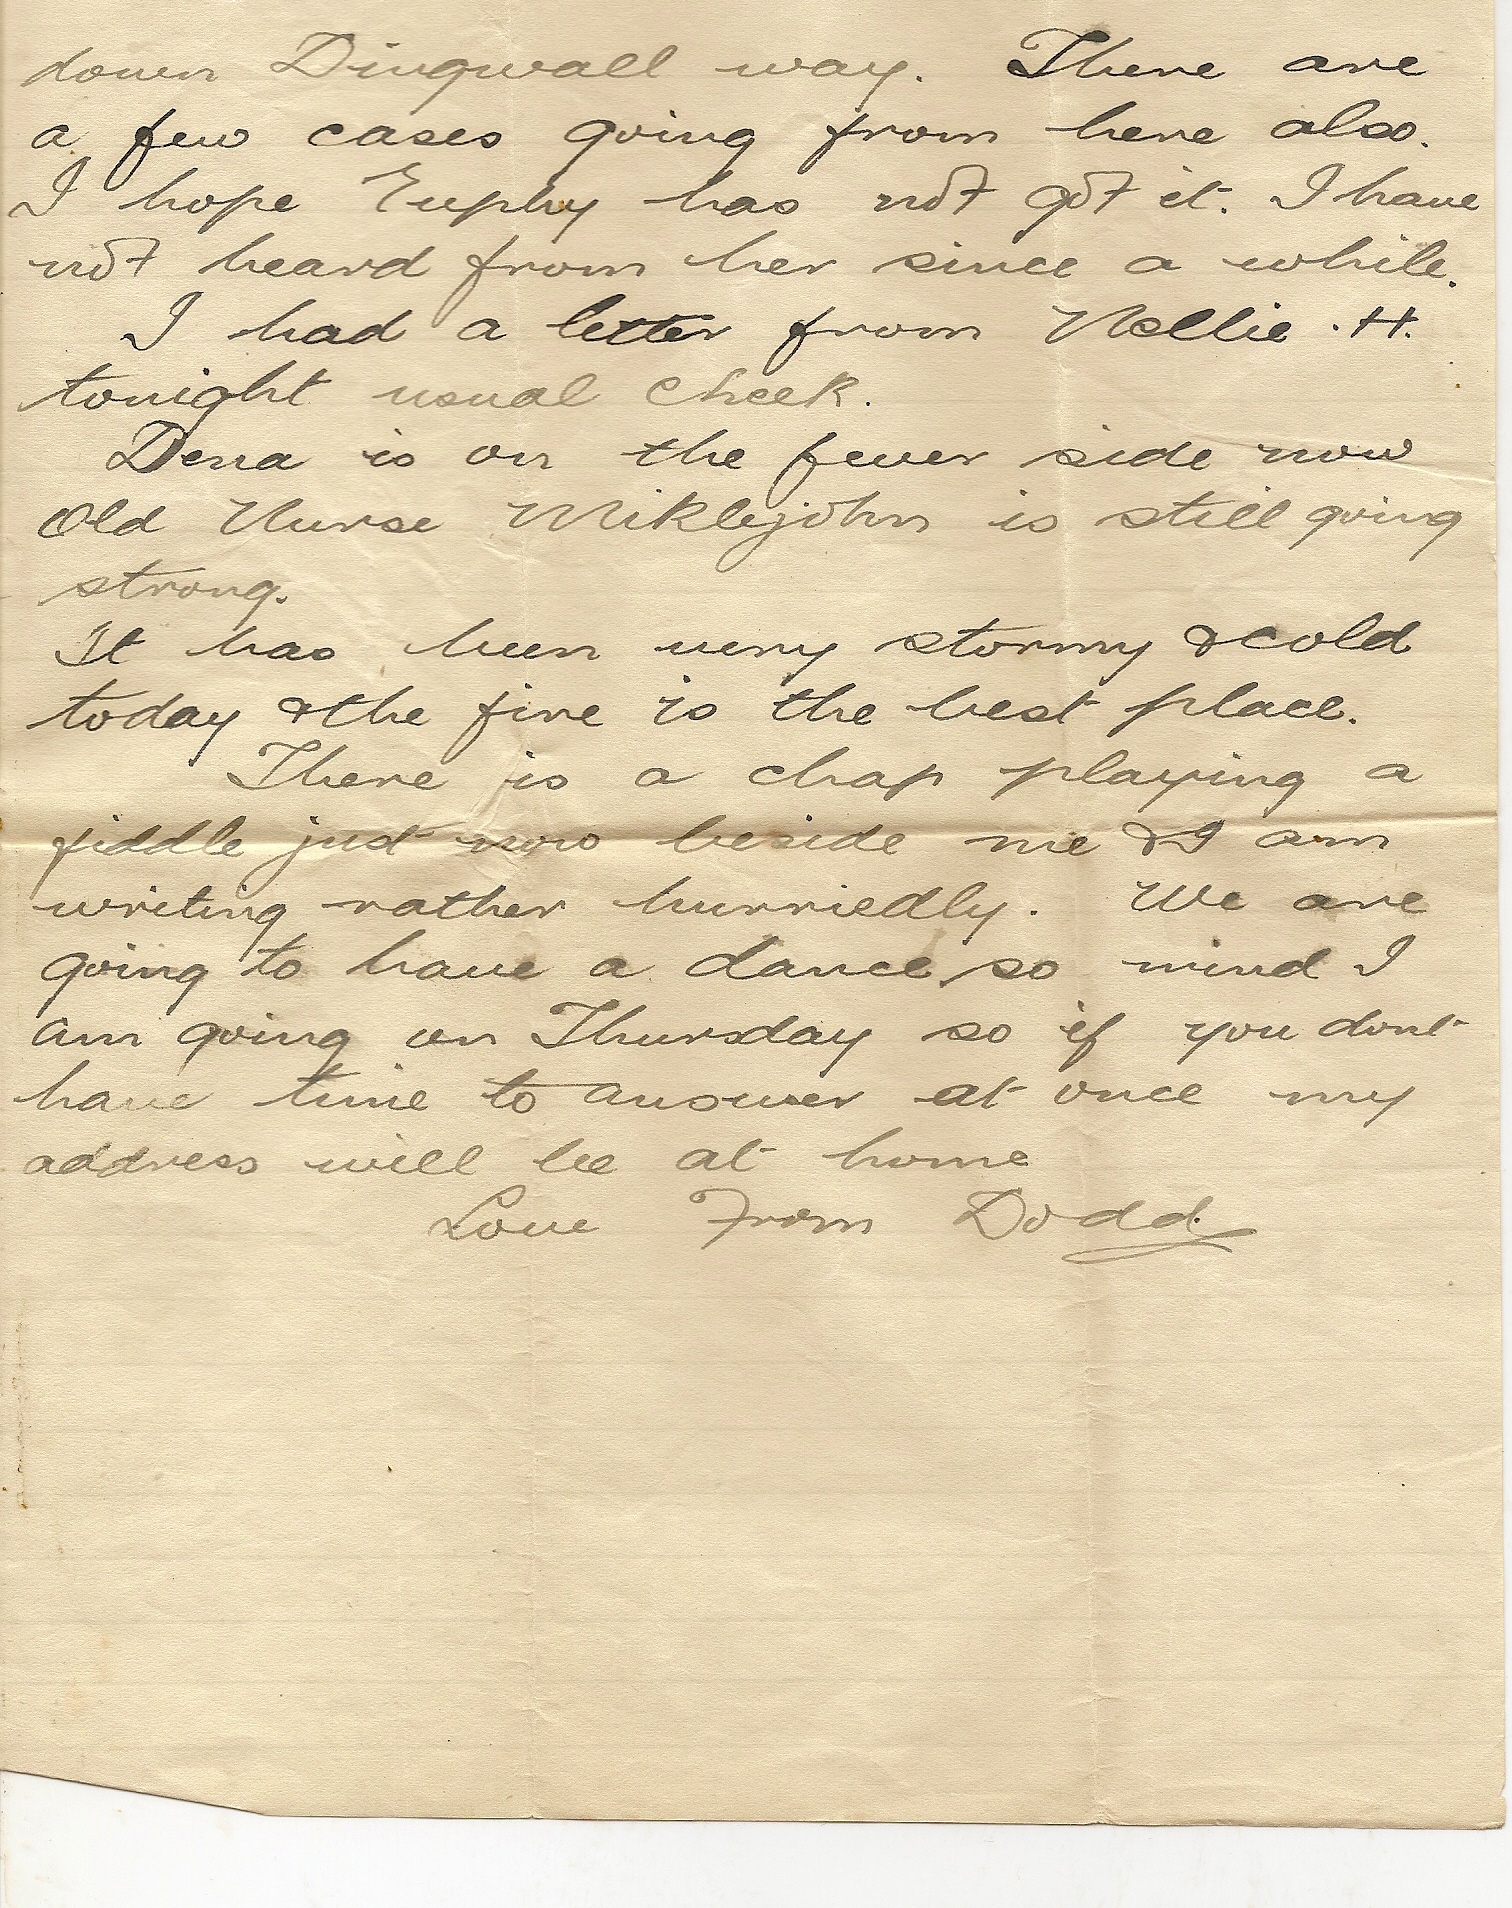 image of Letter from B Coy Hut 7 page 2